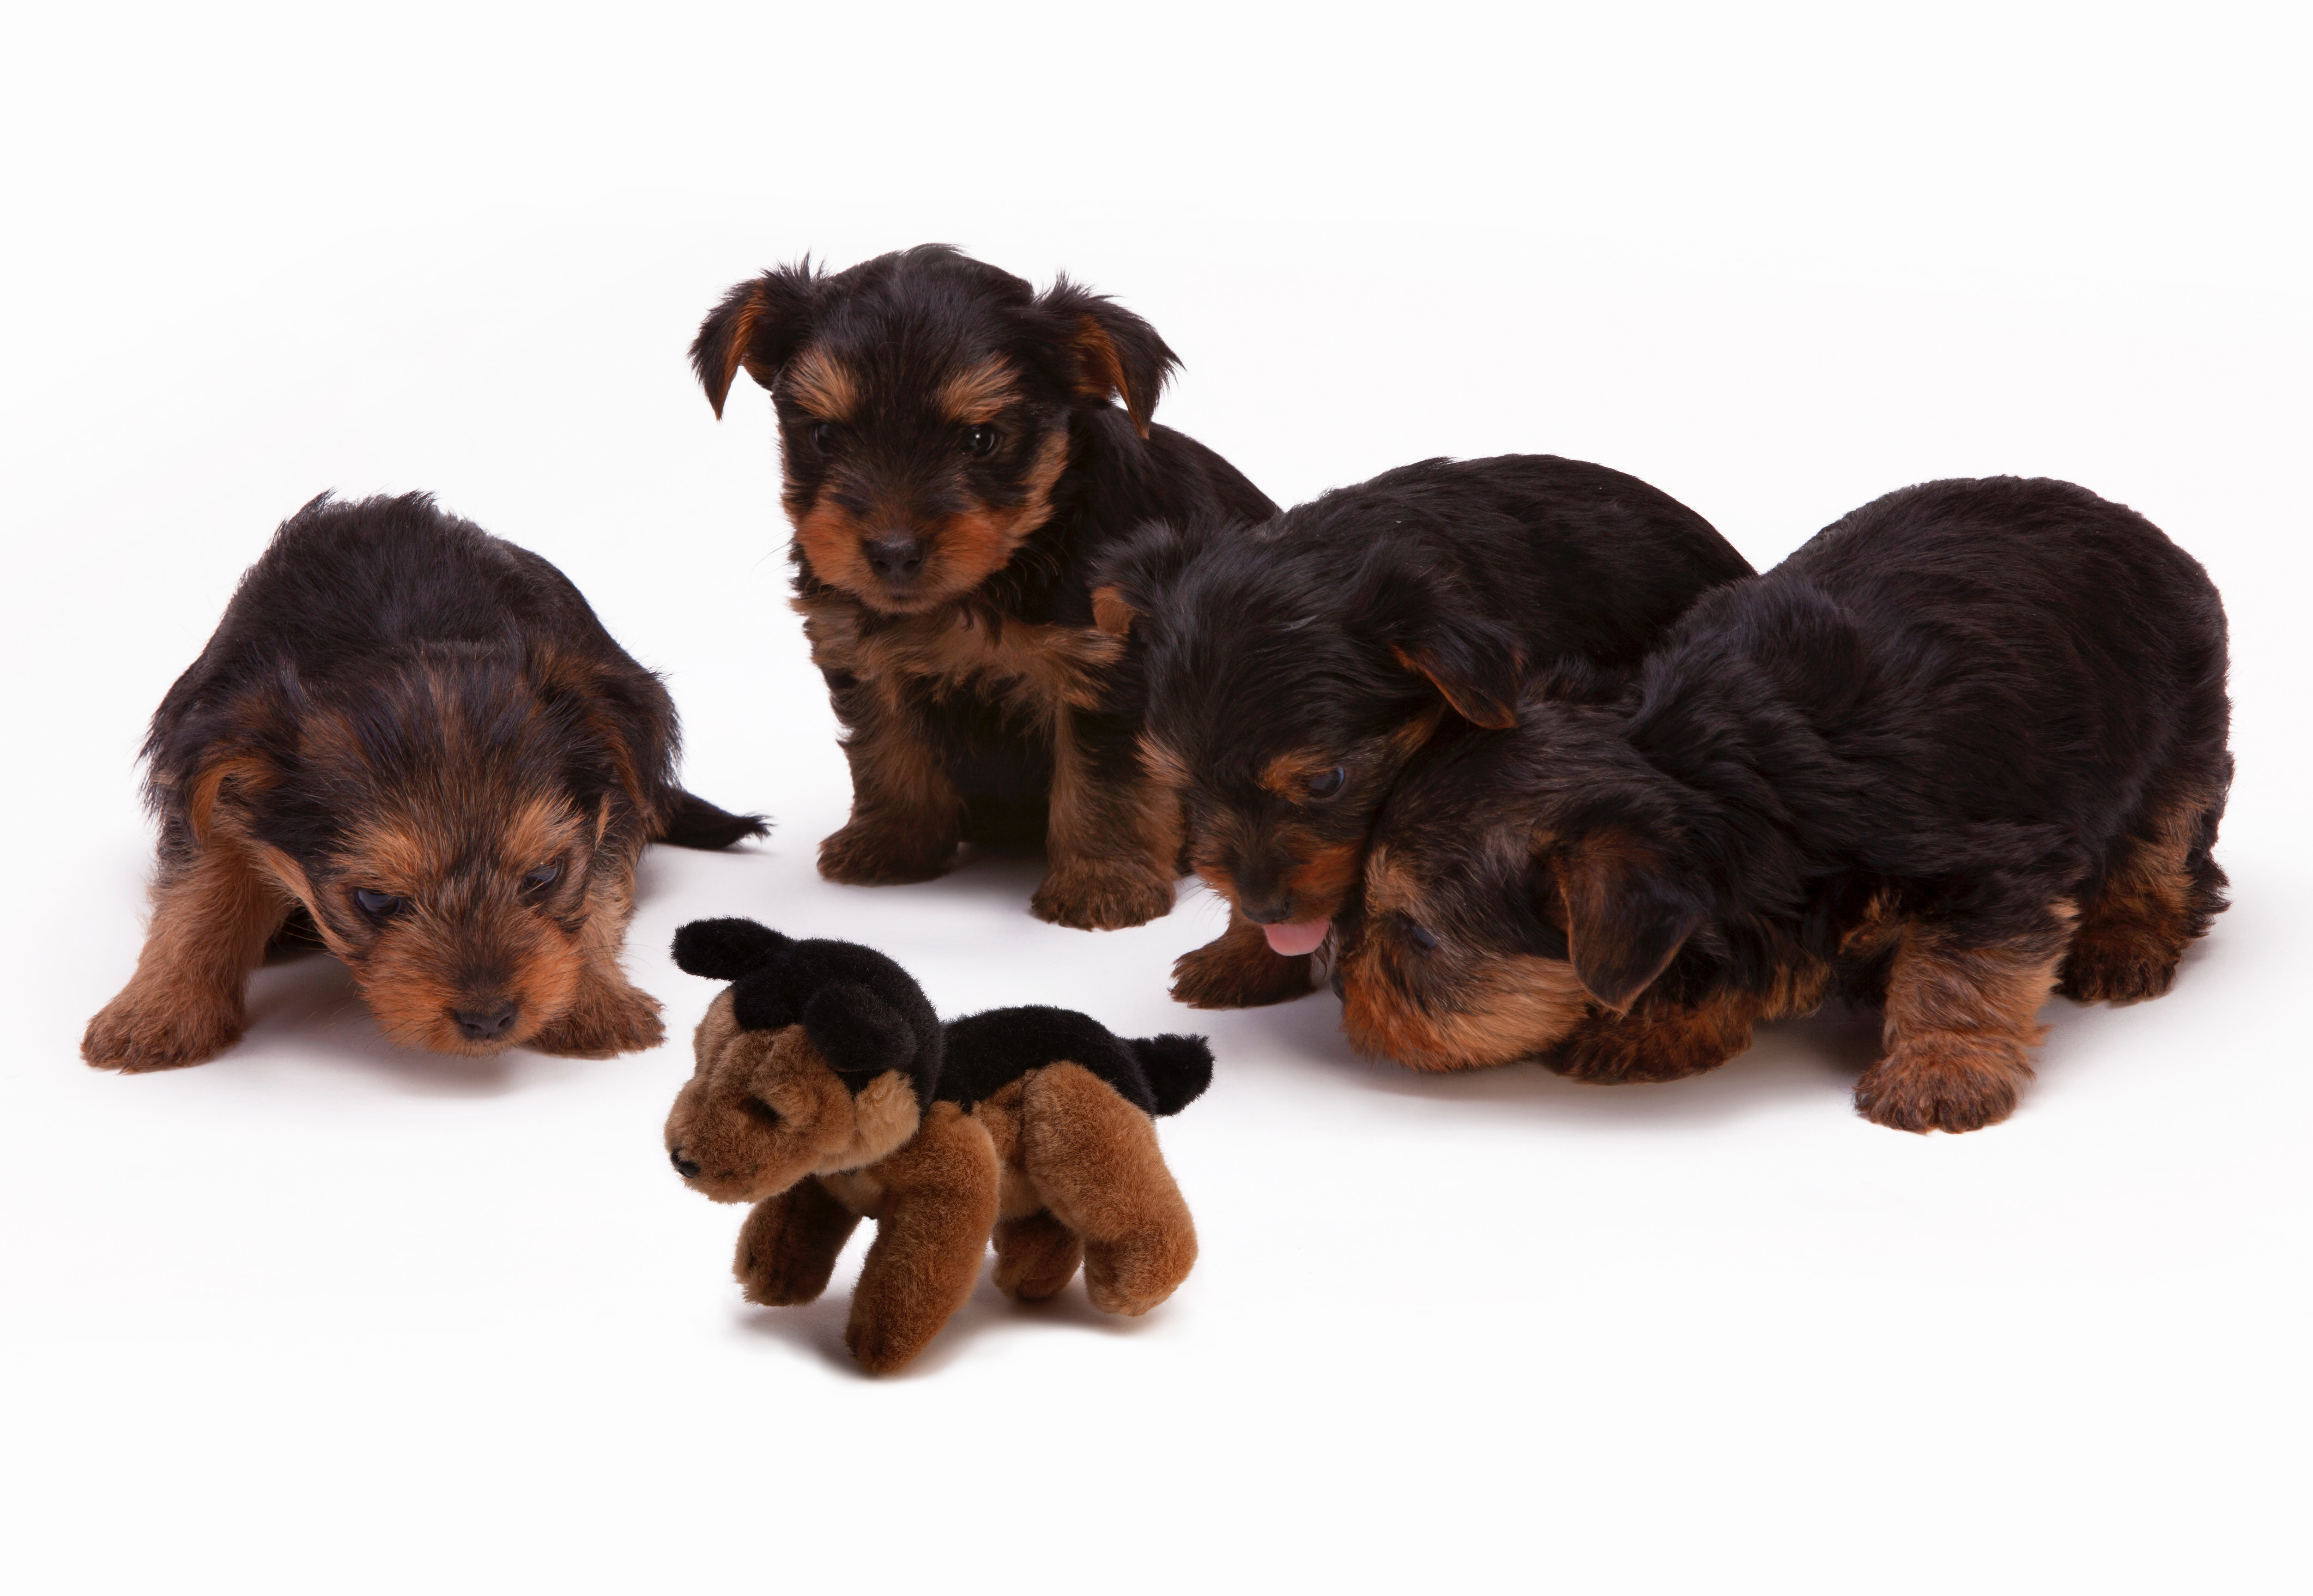 Black and Brown Long Haired Puppies, Mammal, Young, Yorkshire Terrier, Toy, HQ Photo